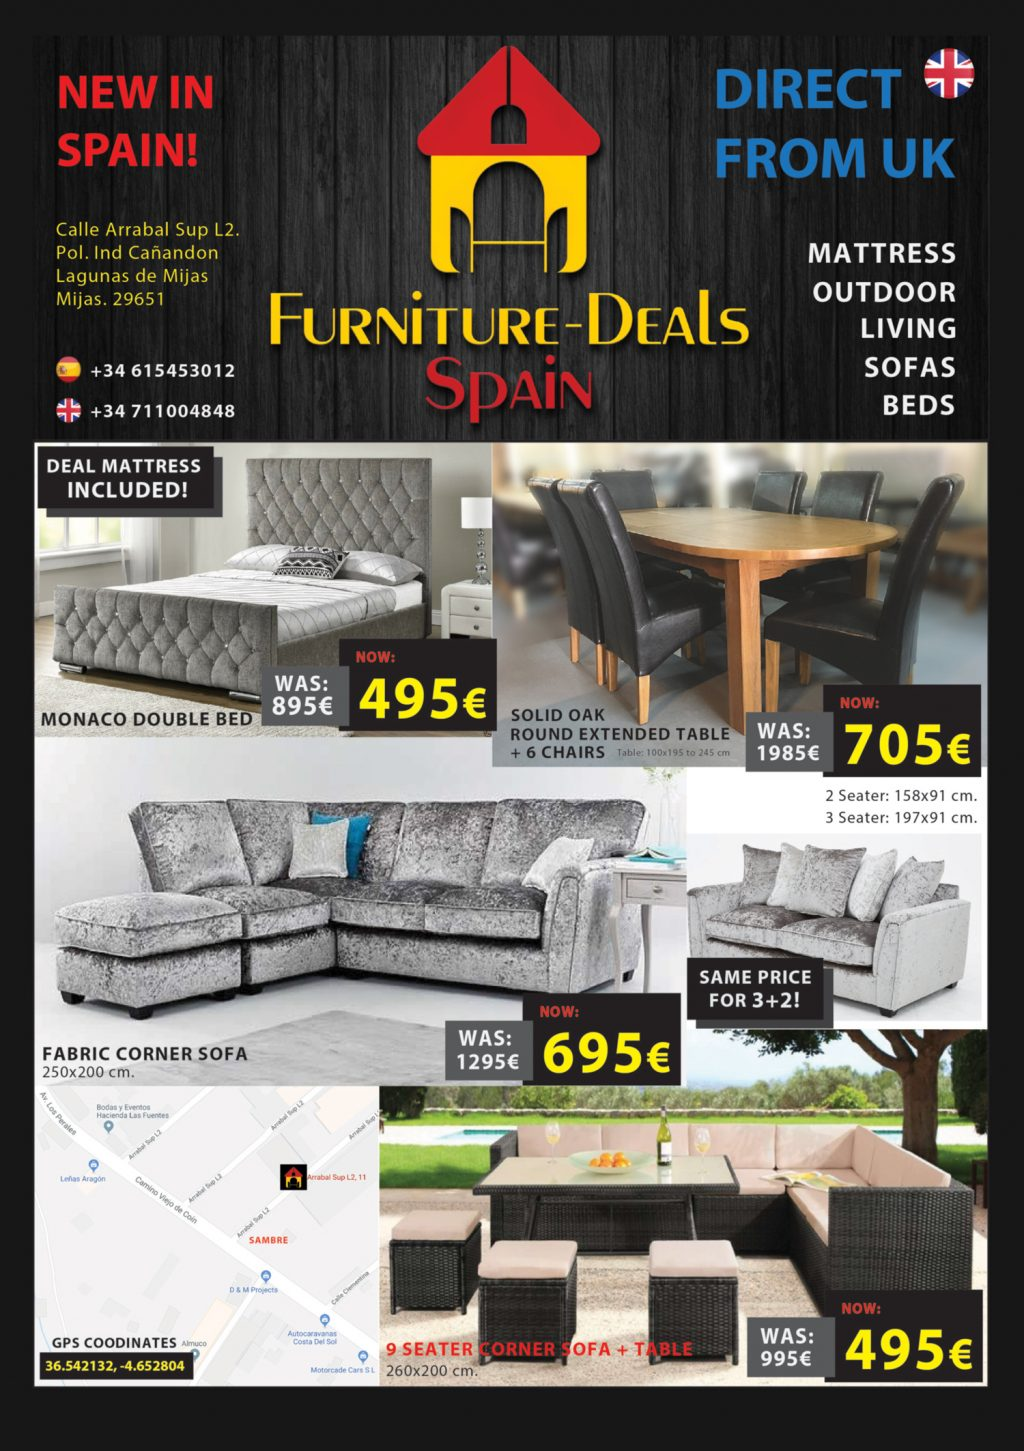 furnituredealsspain.jpg